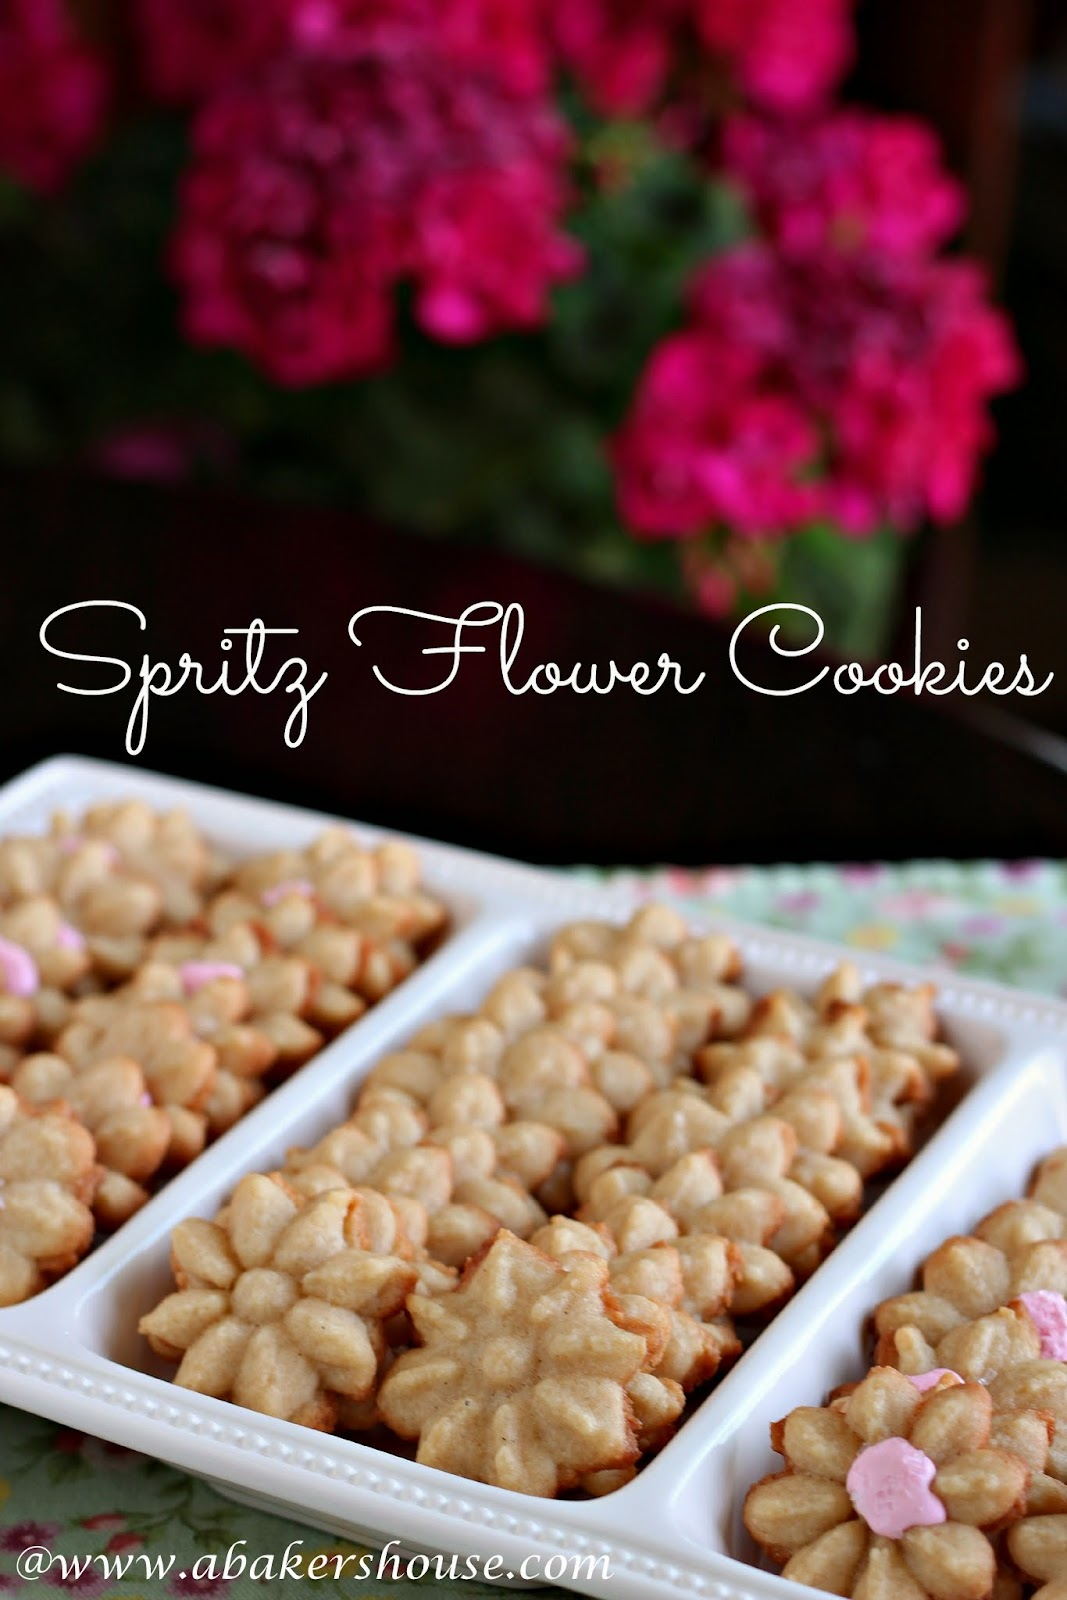 Spritz Flowers Cookies from Holly @www.abakershouse.com